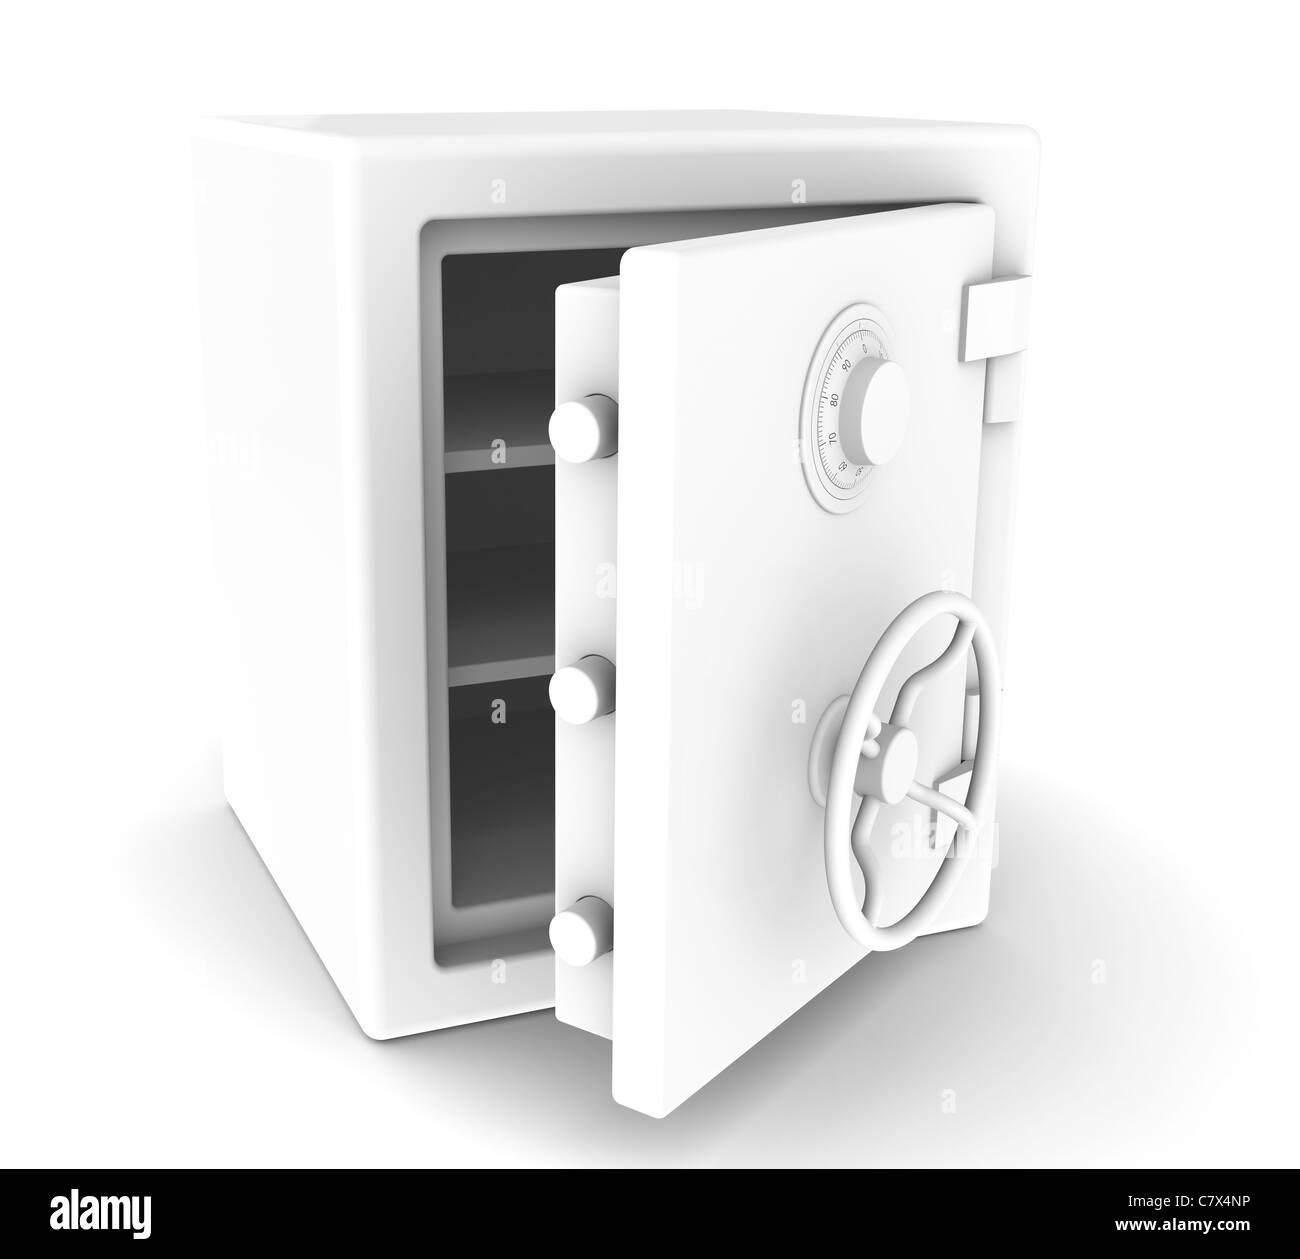 An open Safe with Combination lock. All White. Sparse - Stock Image